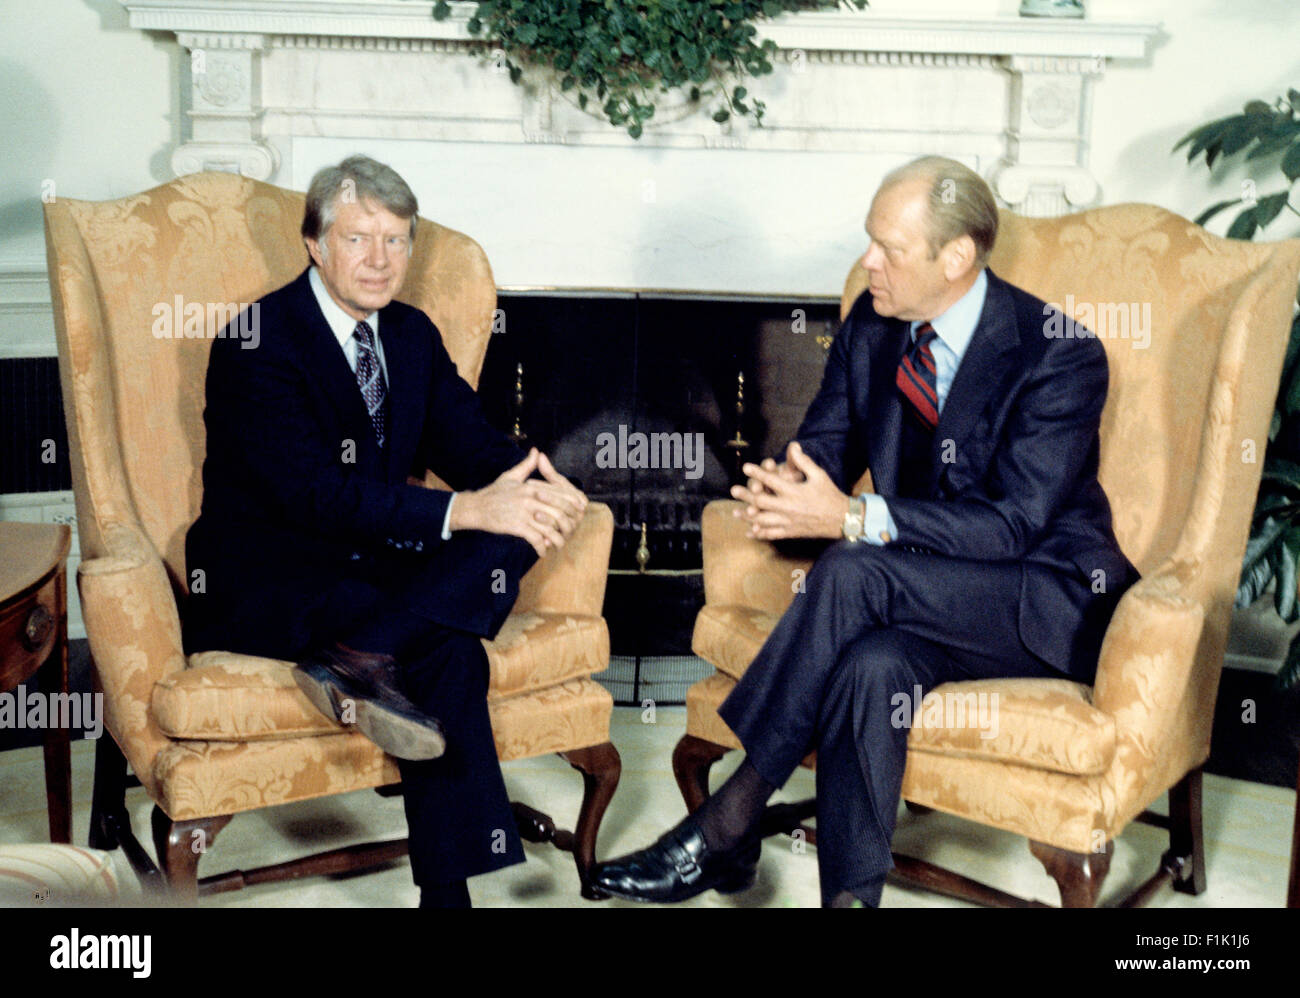 jimmy carter oval office. United States President Gerald R. Ford, Right, Meets U.S. Elect Jimmy Carter, Left, In The Oval Office Of White House Washington, Carter